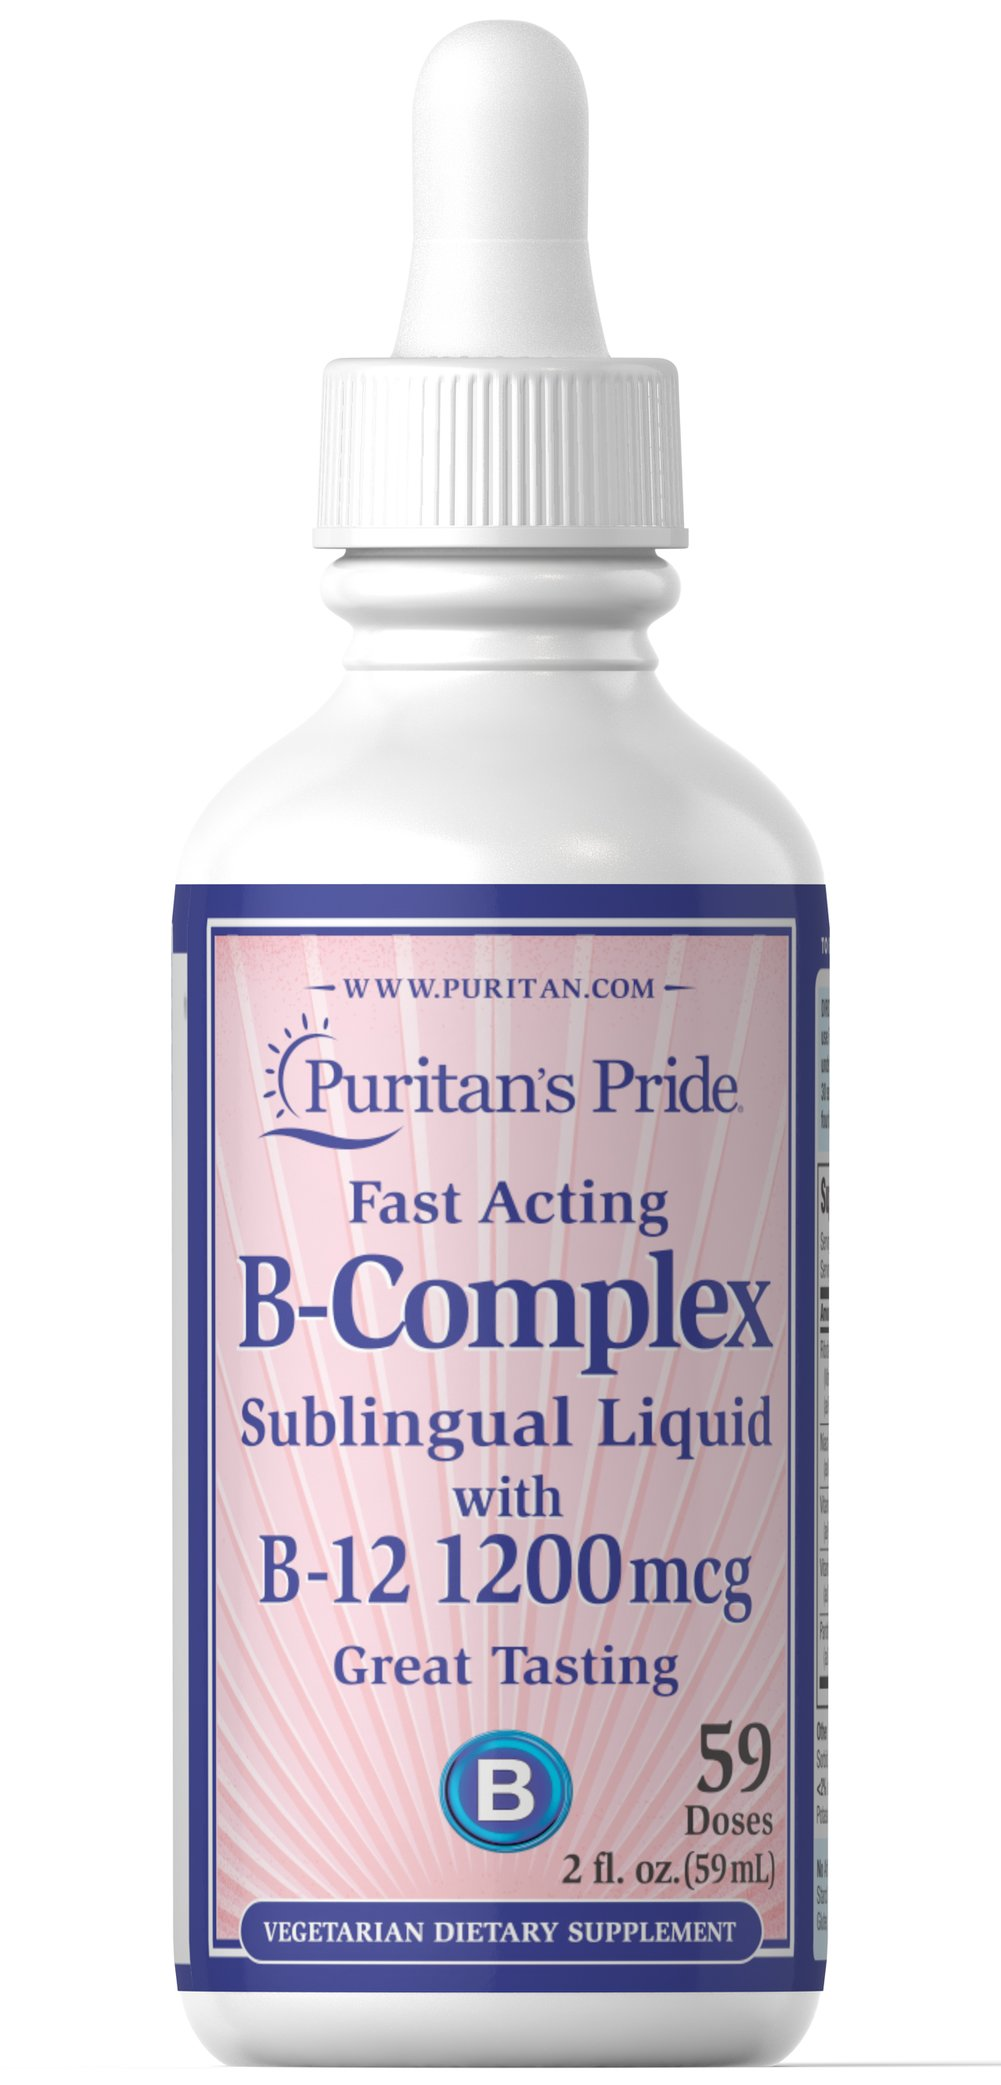 Vitamin B-Complex Sublingual Liquid with Vitamin B-12 <p>This Vitamin B-Complex Sublingual Liquid with Vitamin B-12 provides an excellent source of B-Complex vitamins to help safeguard a sufficient daily intake. The B-Complex is essential for the maintenance of healthy nervous tissue.** The B Vitamins play a role in energy metabolism in the body.** There are 59 doses per 2 fl. oz.</p> 2 fl oz Liquid  $7.69